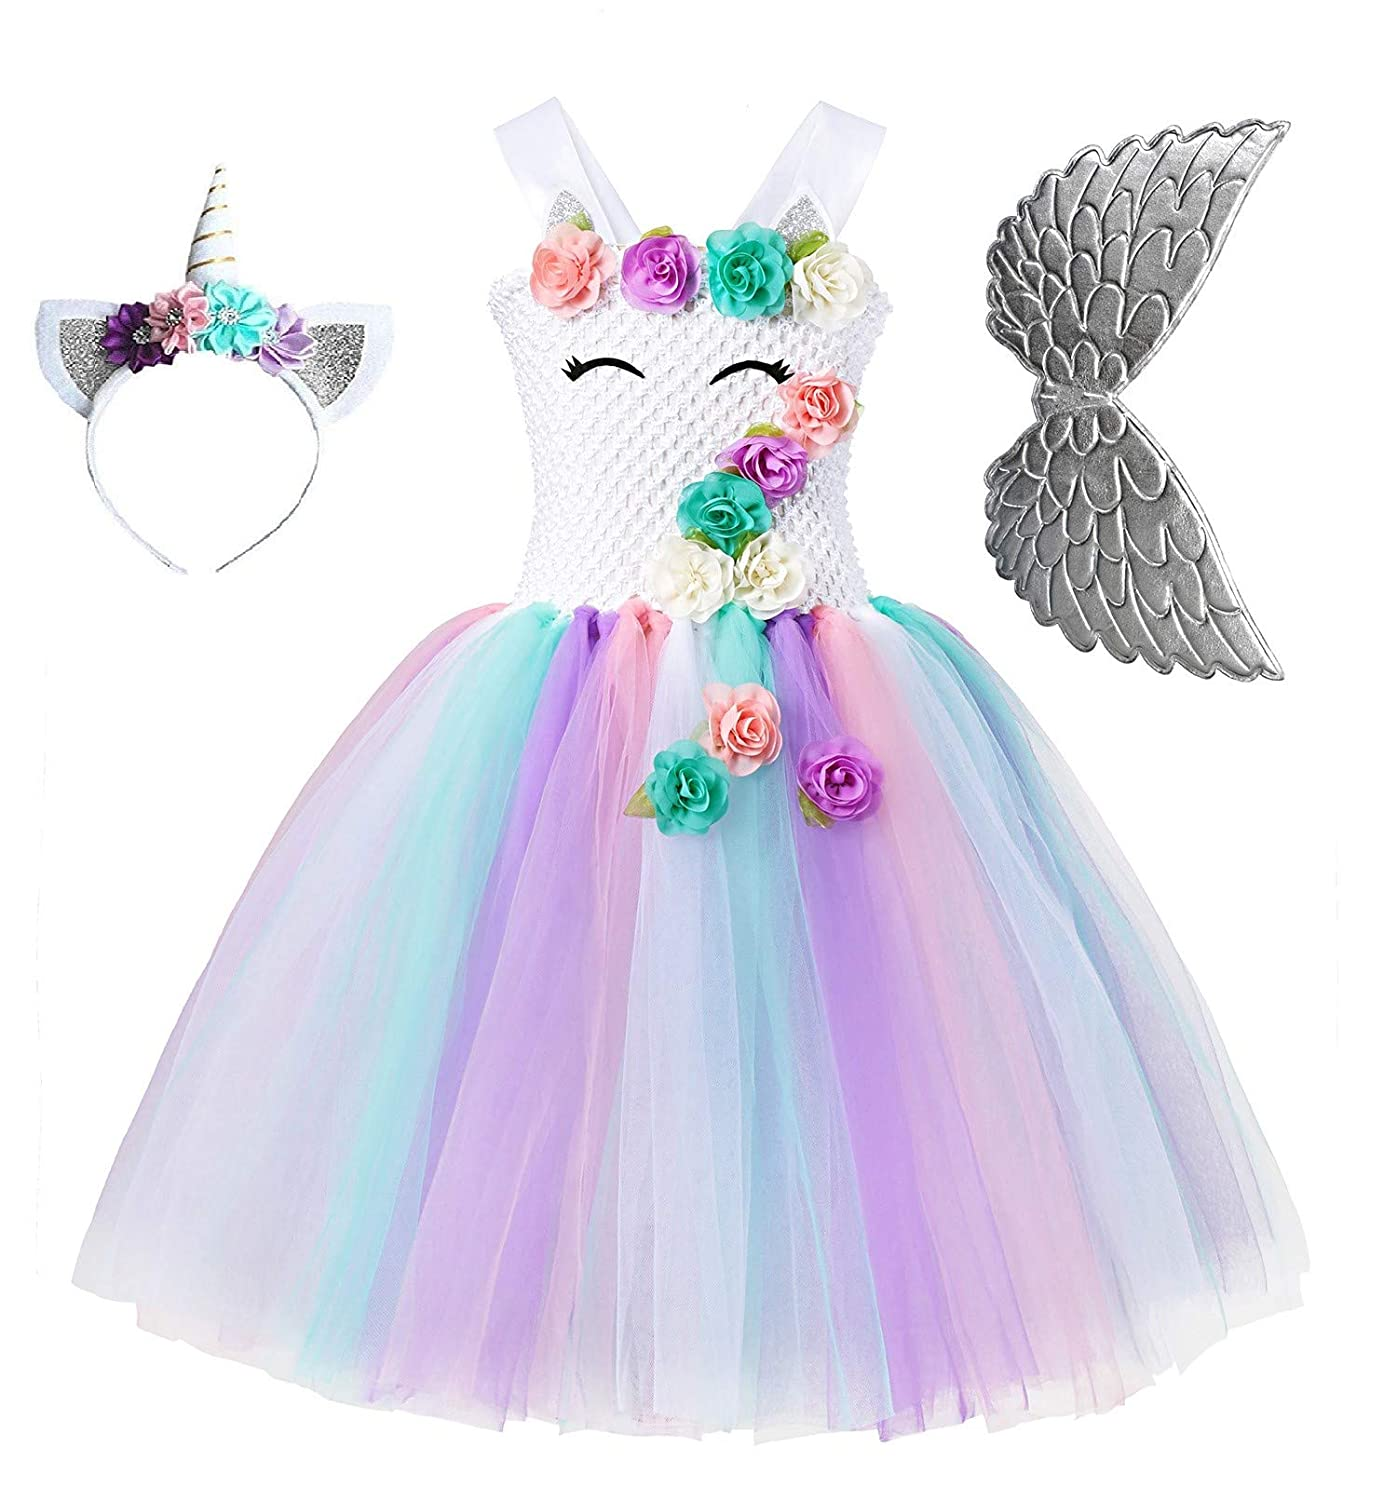 35295580f910 Amazon.com: Unicorn Tutu Party Dress for Girls - Flower Pageant Princess  Costume with Headband and Wings: Clothing